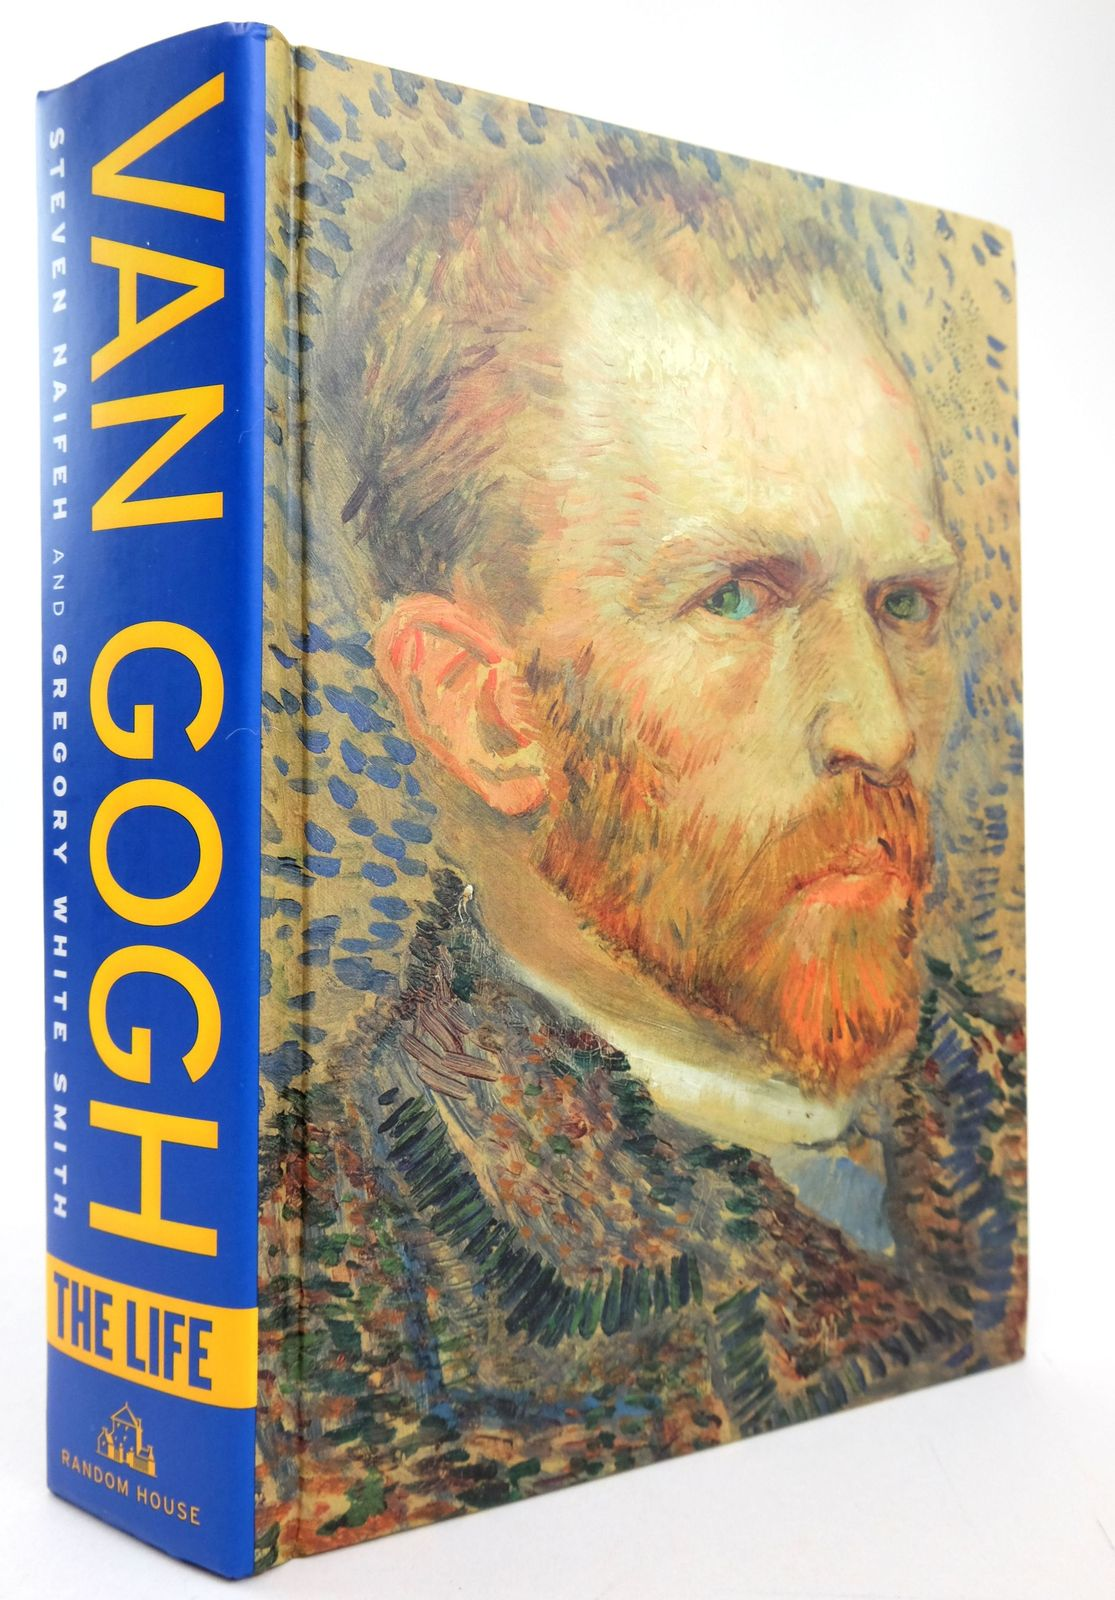 Photo of VAN GOGH THE LIFE written by Naifeh, Steven Smith, Gregory White published by Random House (STOCK CODE: 1819656)  for sale by Stella & Rose's Books